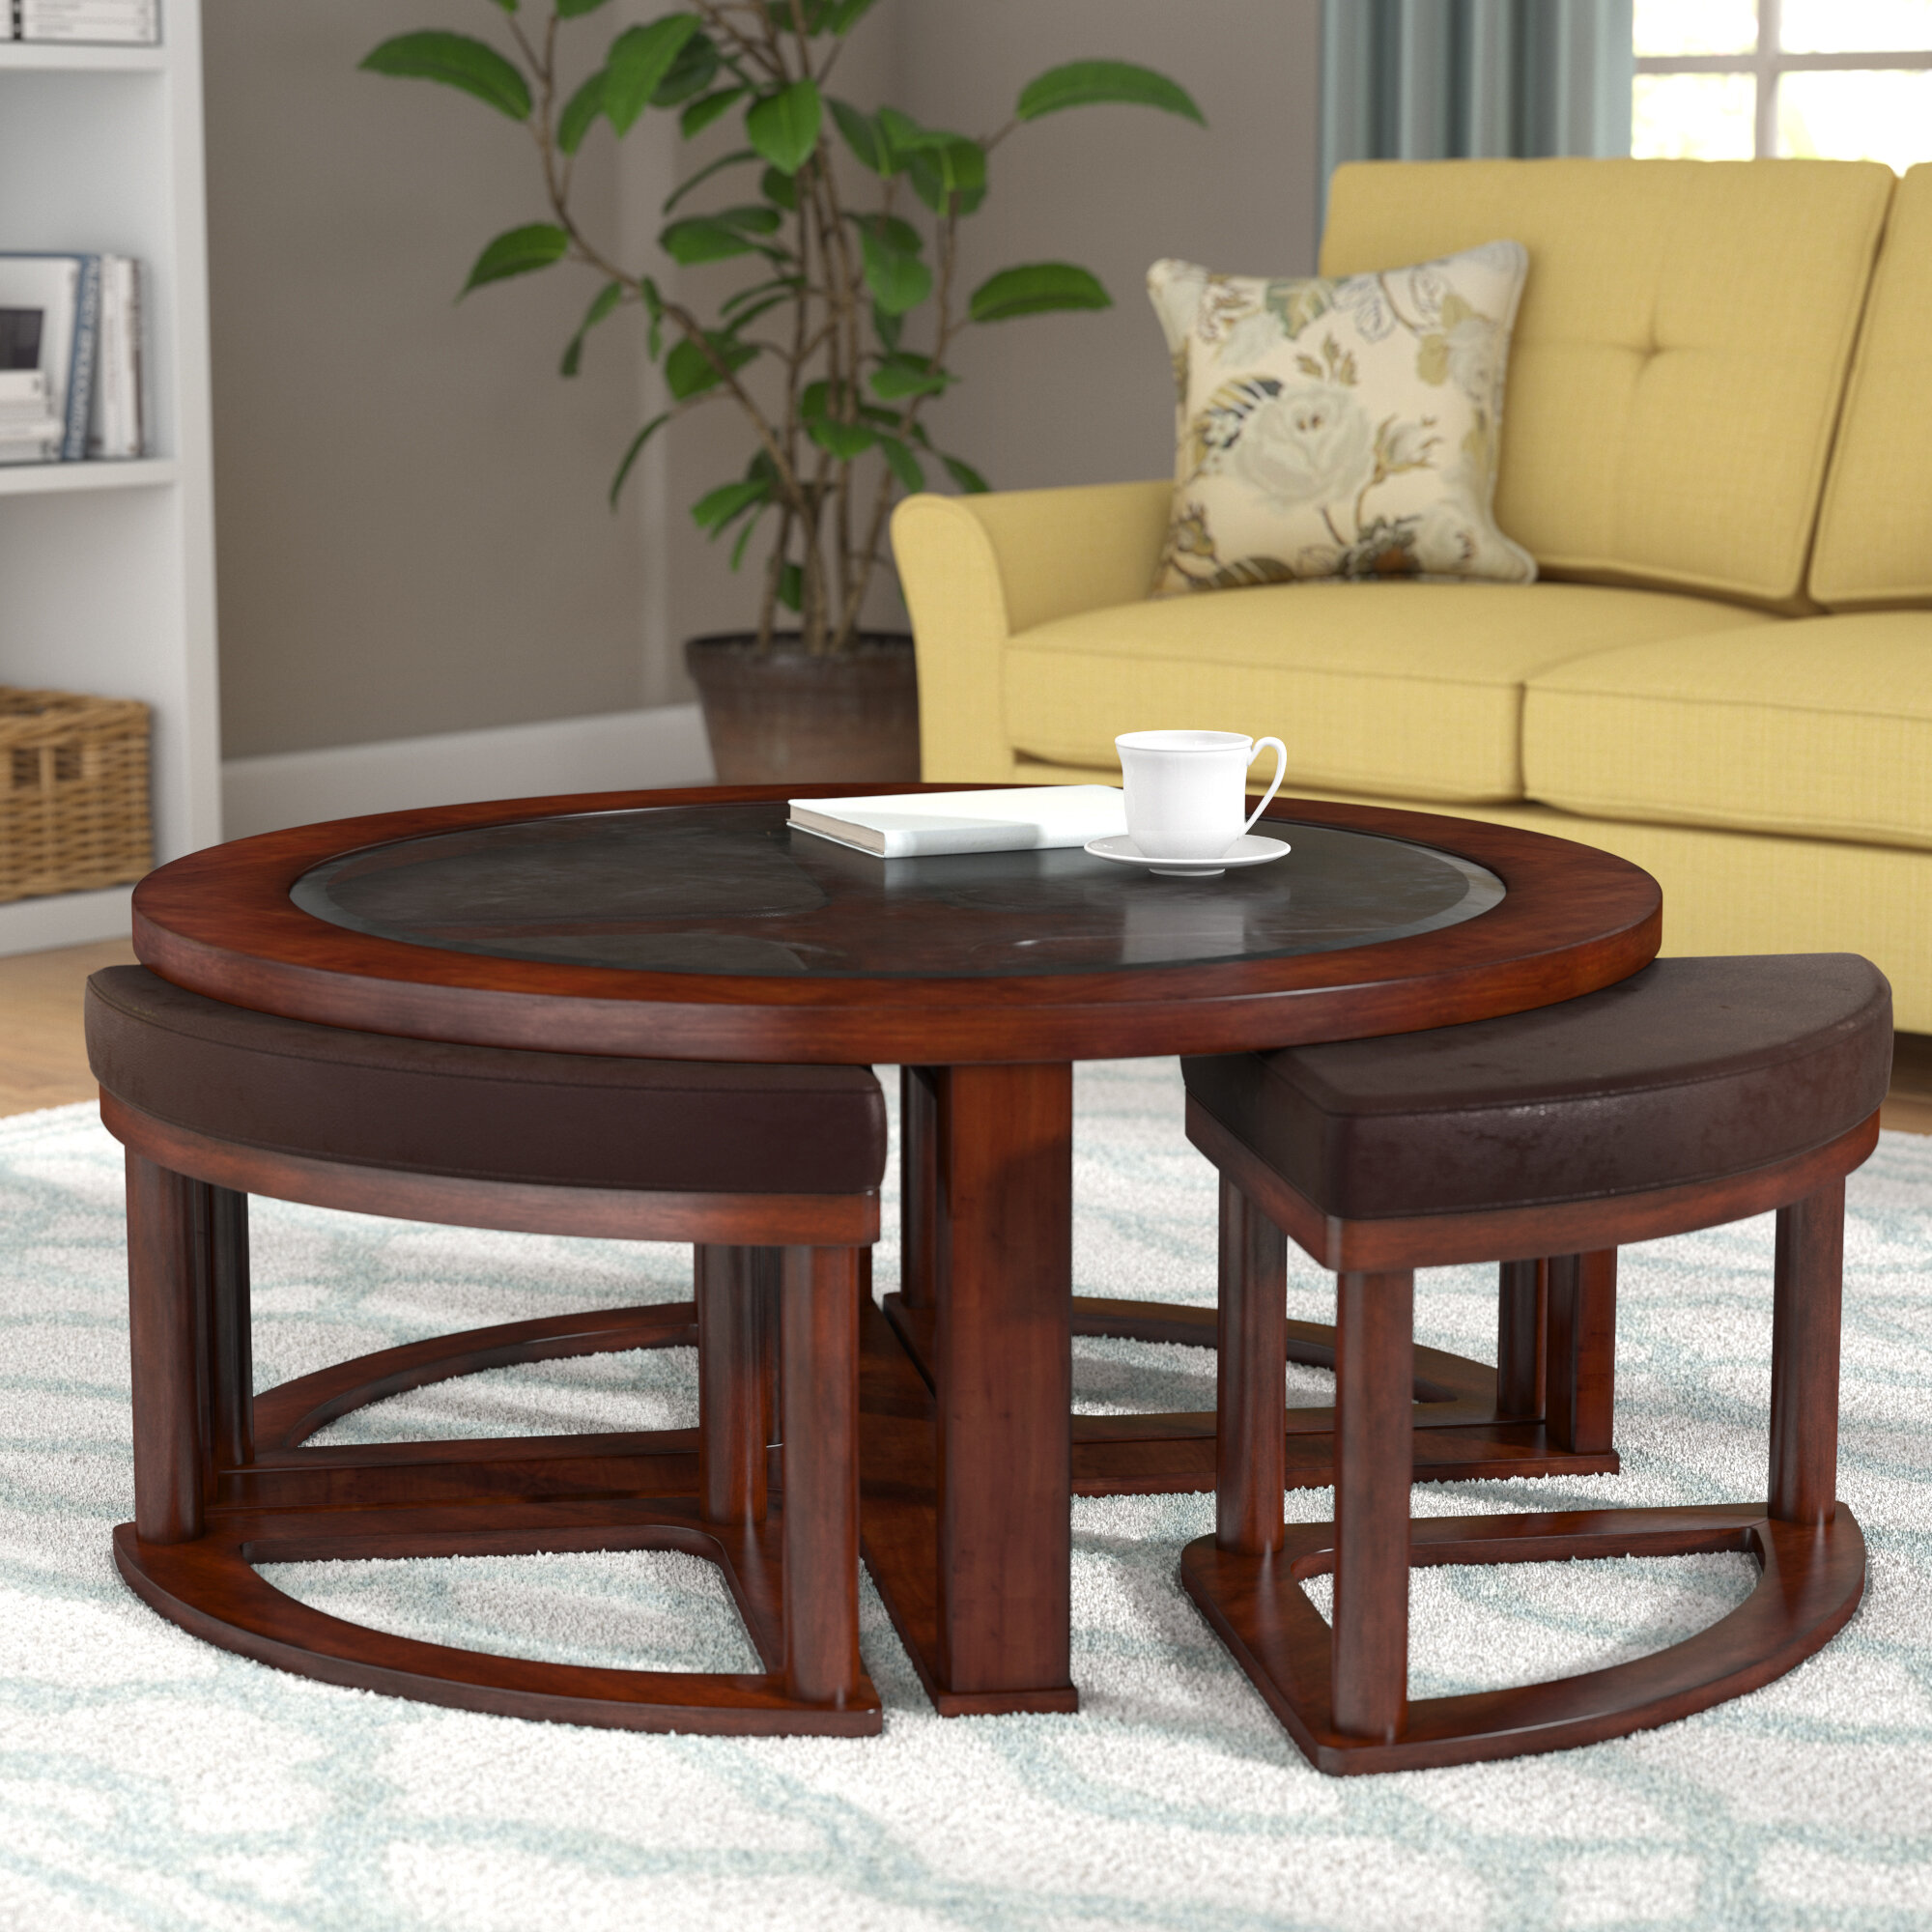 coffee table with stools Darby Home Co Eastin Coffee Table with Nested Stools & Reviews  coffee table with stools